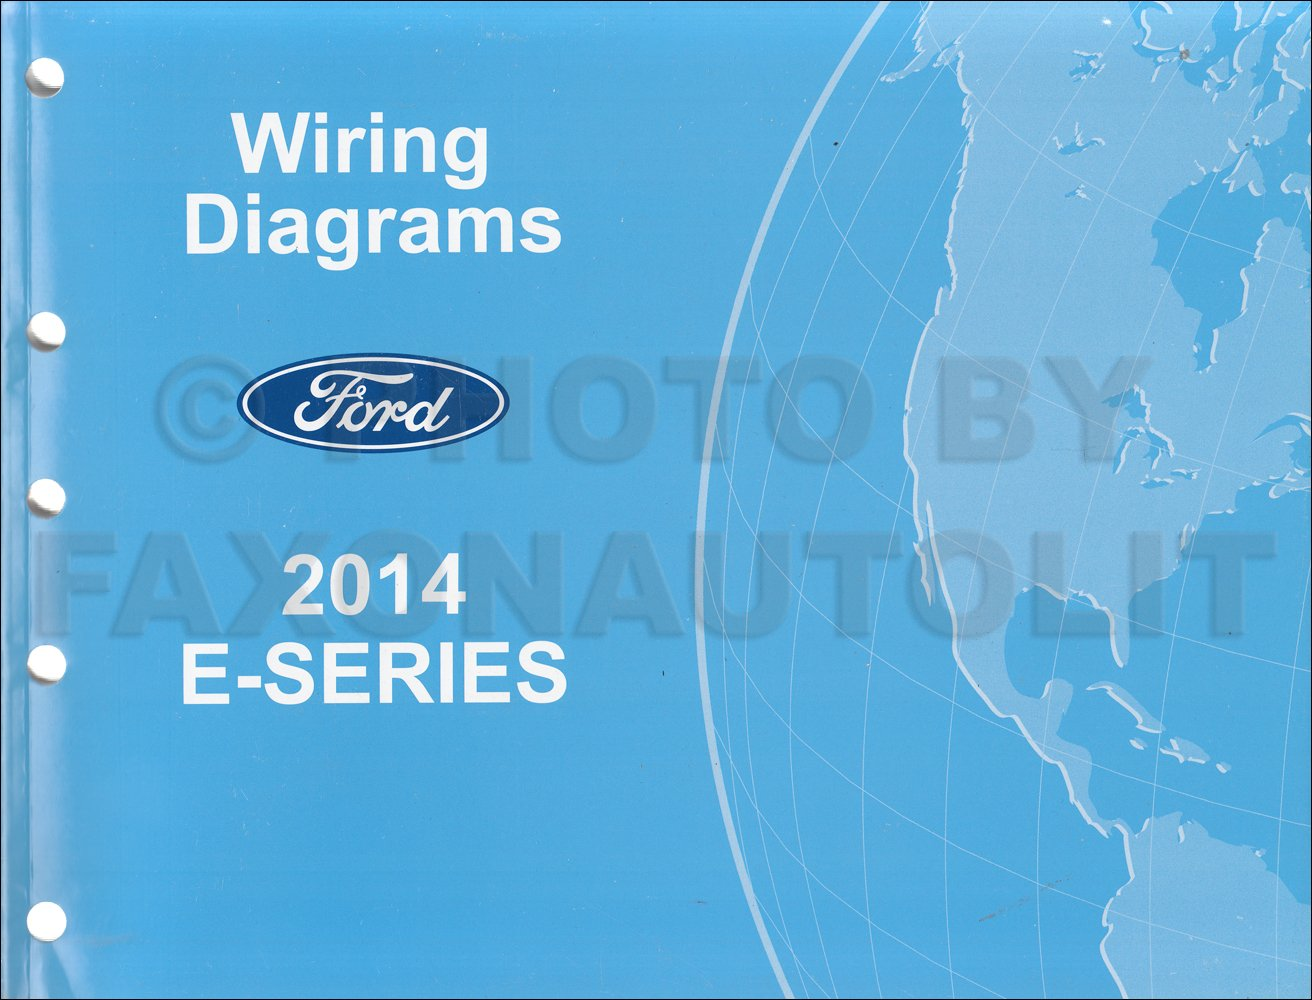 Ford Wiring Diagram Symbols Complete Car Engine Scheme And Wiring